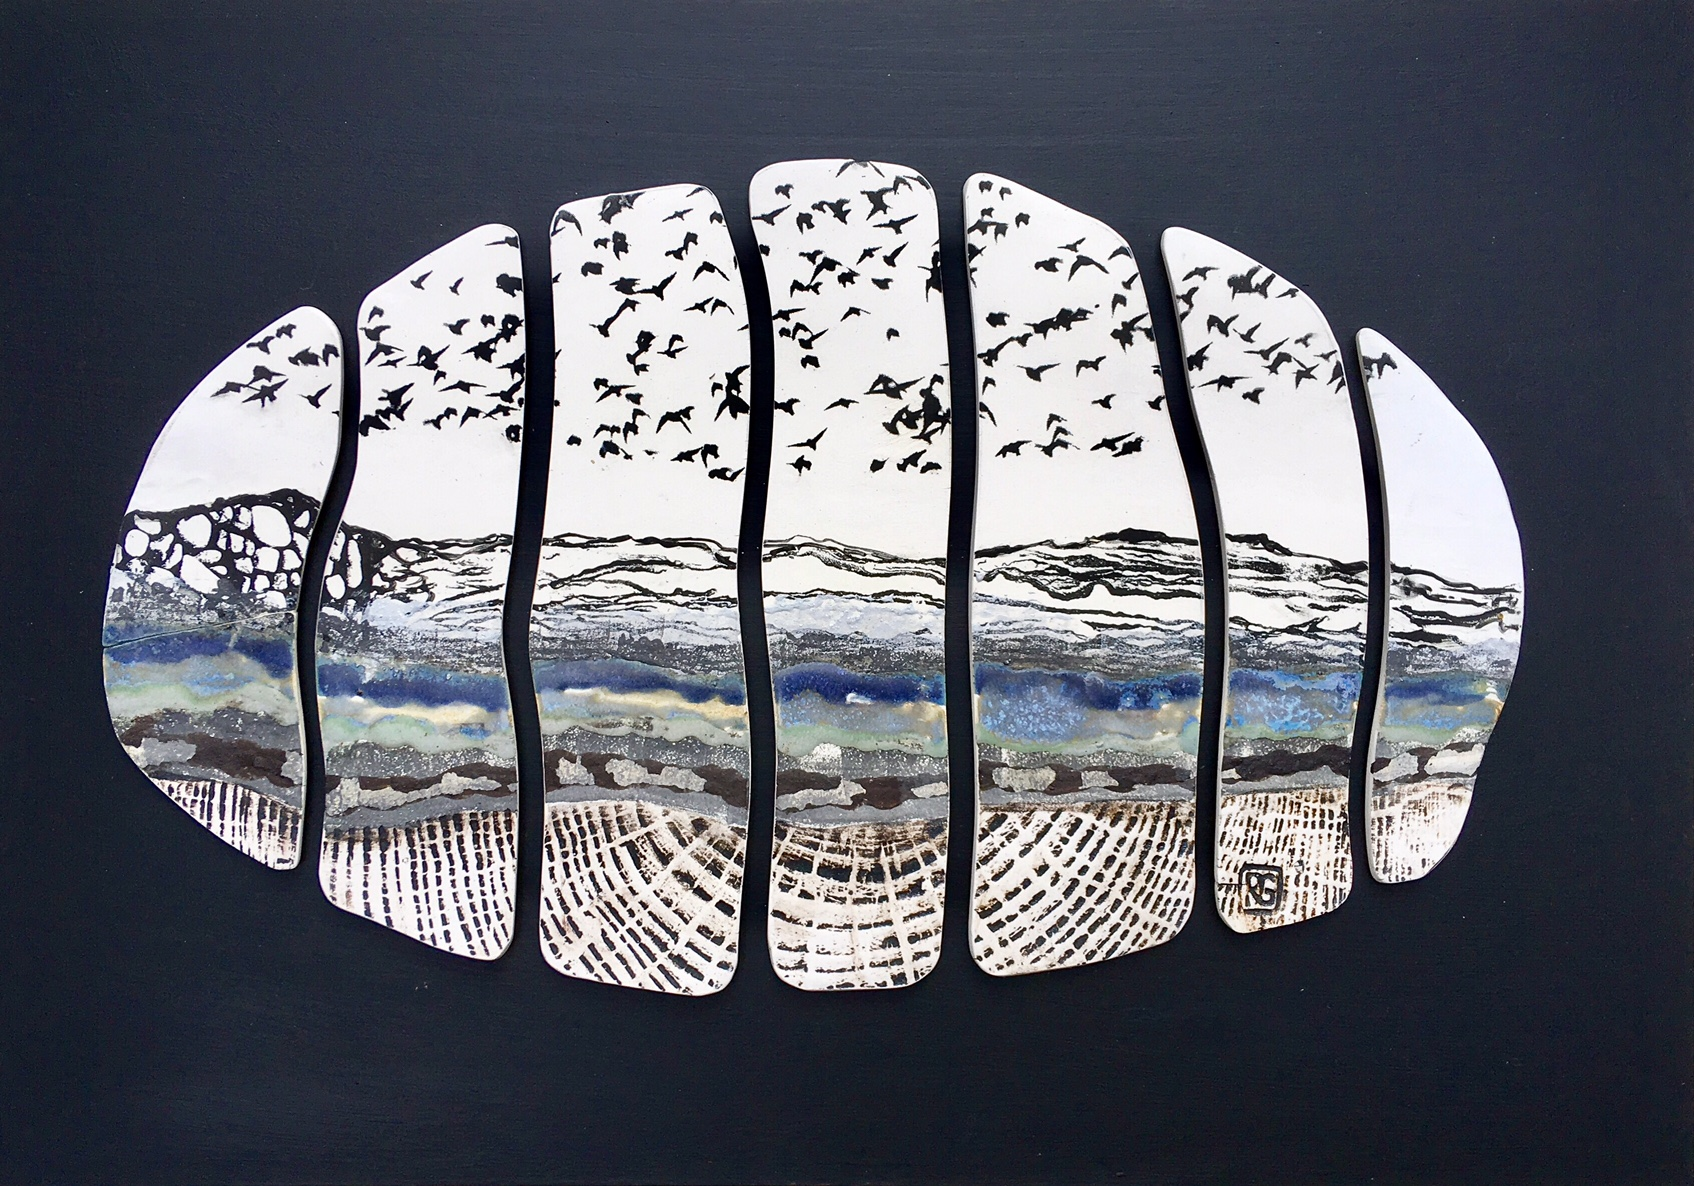 Ceramic Wall Art Murmurations over Landscape